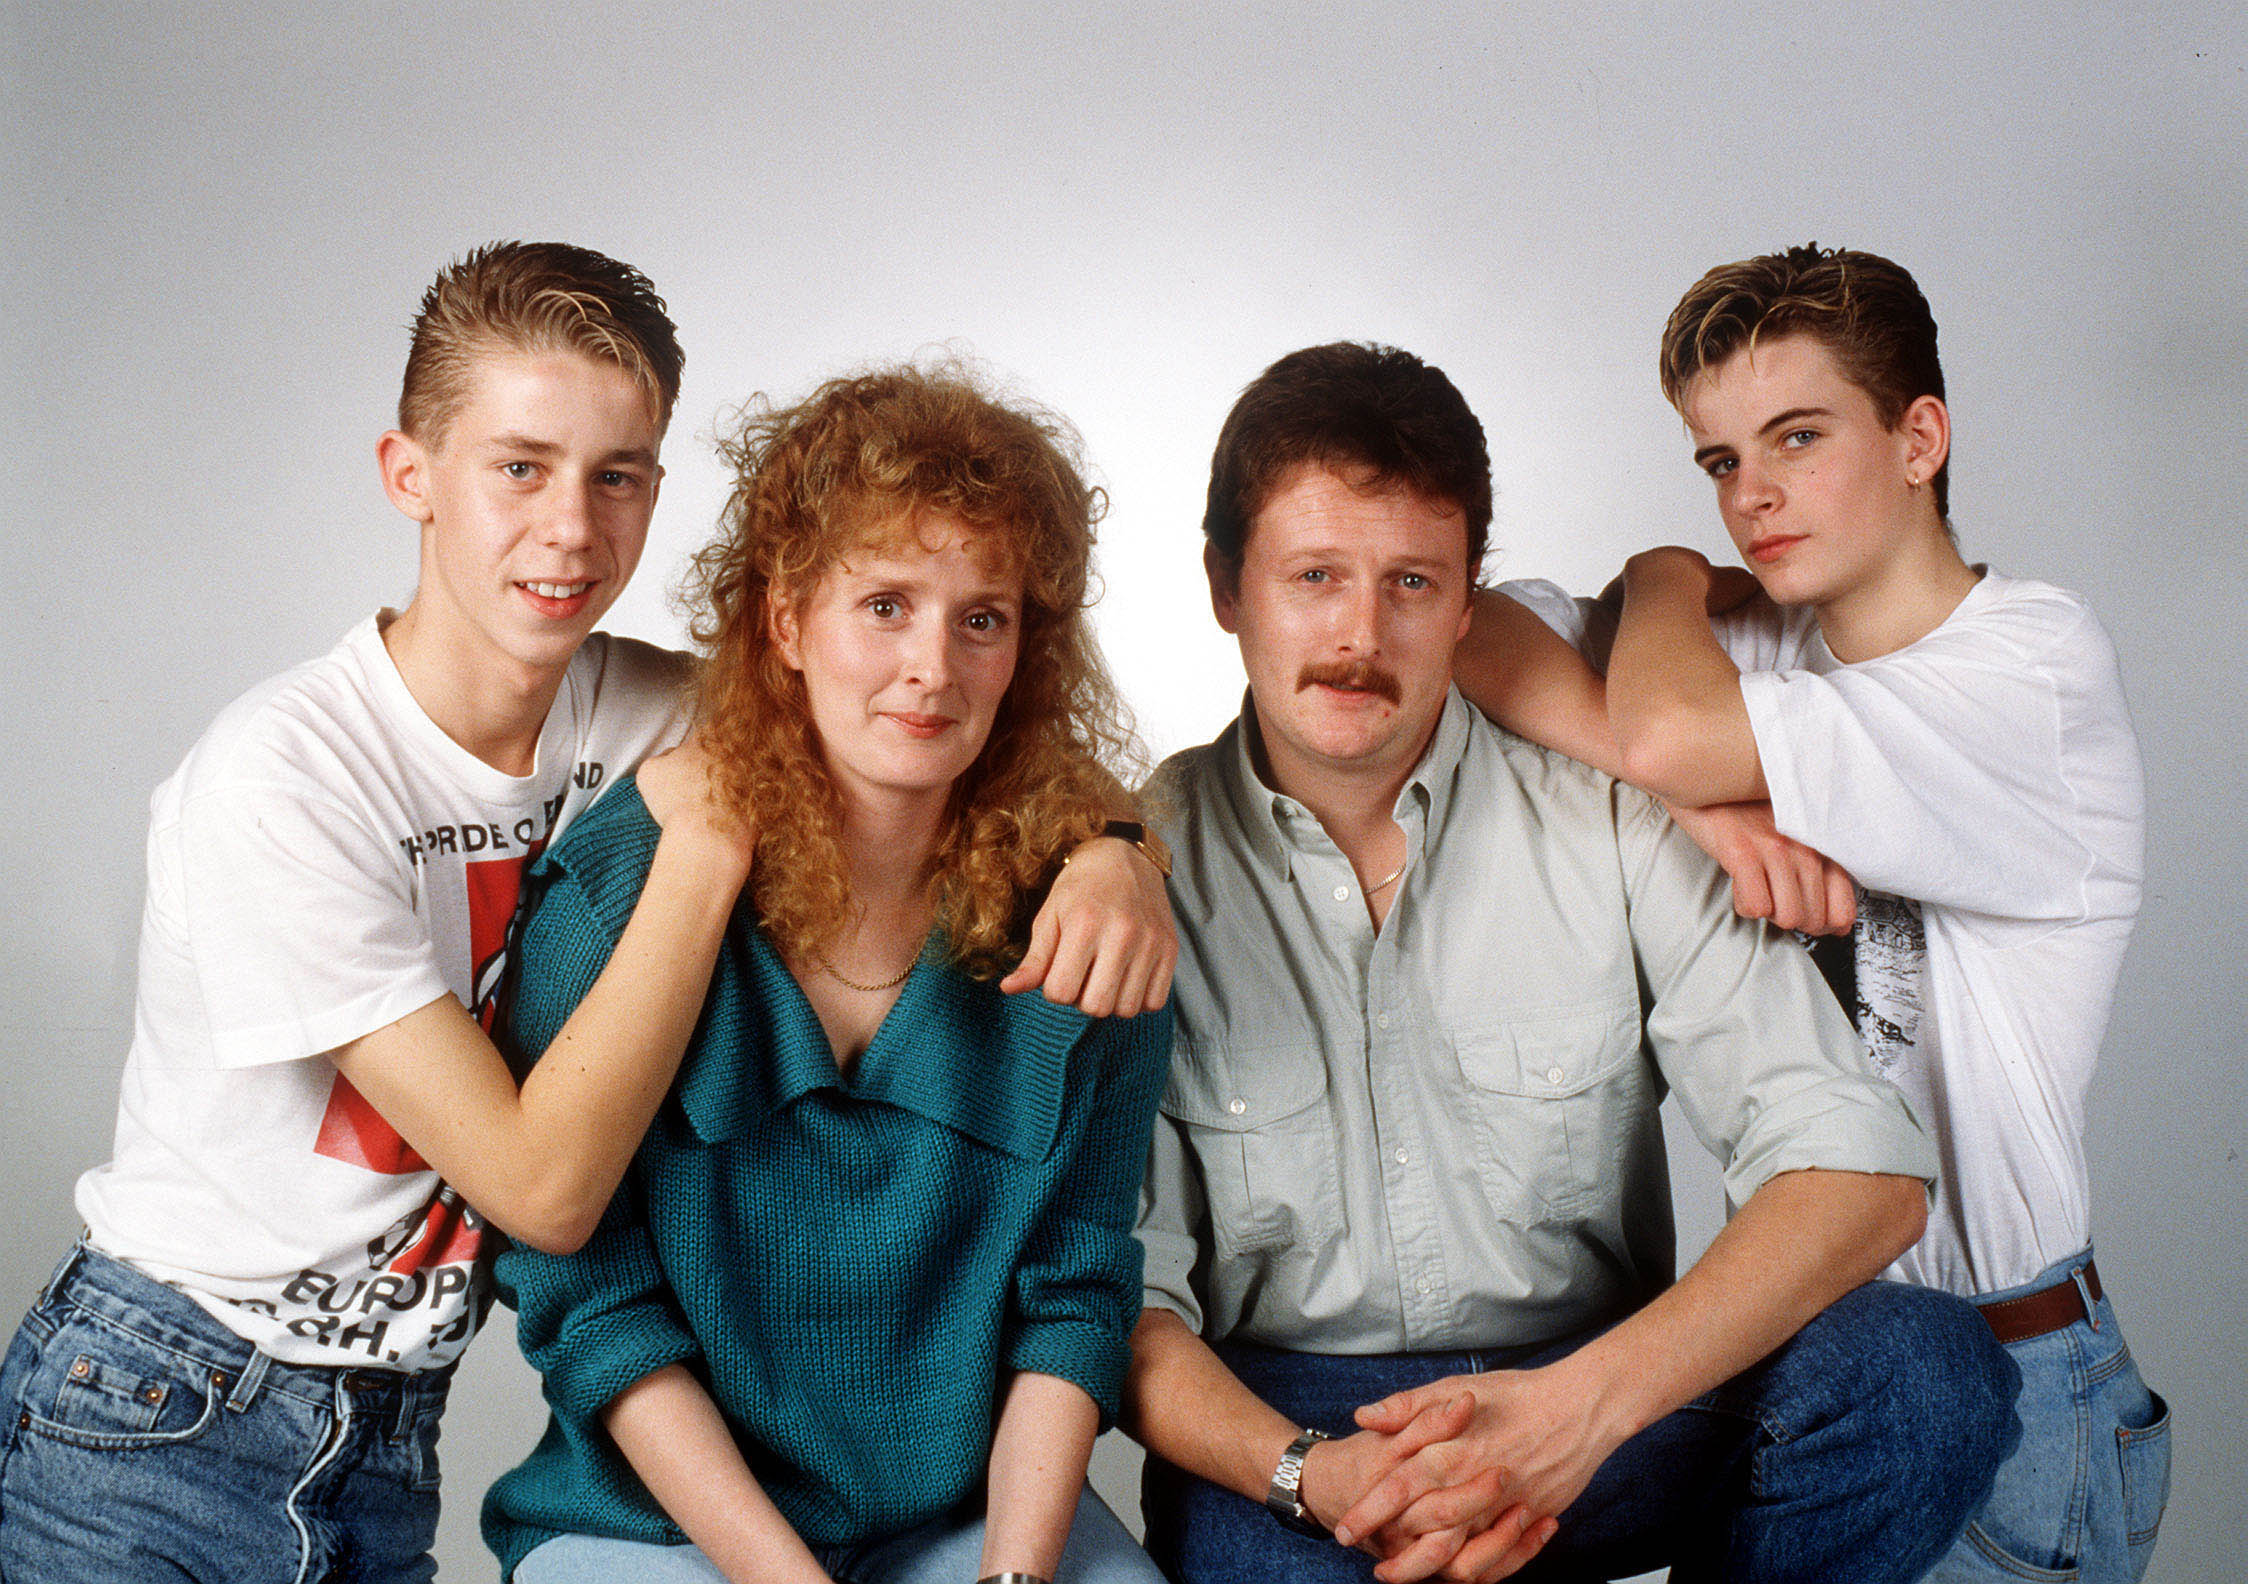 Editorial use only Mandatory Credit: Photo by ITV/REX/Shutterstock (1389417q) Coronation Street 1989 The McDonald Family Andy McDonald [Nicholas Cochrane], Liz McDonald [Beverly Callard], Jim McDonald [Charles Lawson] and Steve McDonald [Simon Gregson]. 'Farewell Liz' TV Programme. - 20 Apr 2011 It is the end of a Corrie era as the nation prepares to say farewell to one of the best-loved characters in British soap history. Liz McDonald, landlady of the Rovers and queen of the miniskirt, is leaving Coronation Street after more than 20 years behind the bar. In this half-hour tribute on ITV1, friends and colleagues applaud the work of actress Beverley Callard, who has played Liz since arriving on the soap in 1989. The programme looks back at some of Liz's greatest storylines and Beverley answers the question that everyone is asking: has one of TV's treasures really gone for good… or will she one day return to Weatherfield?